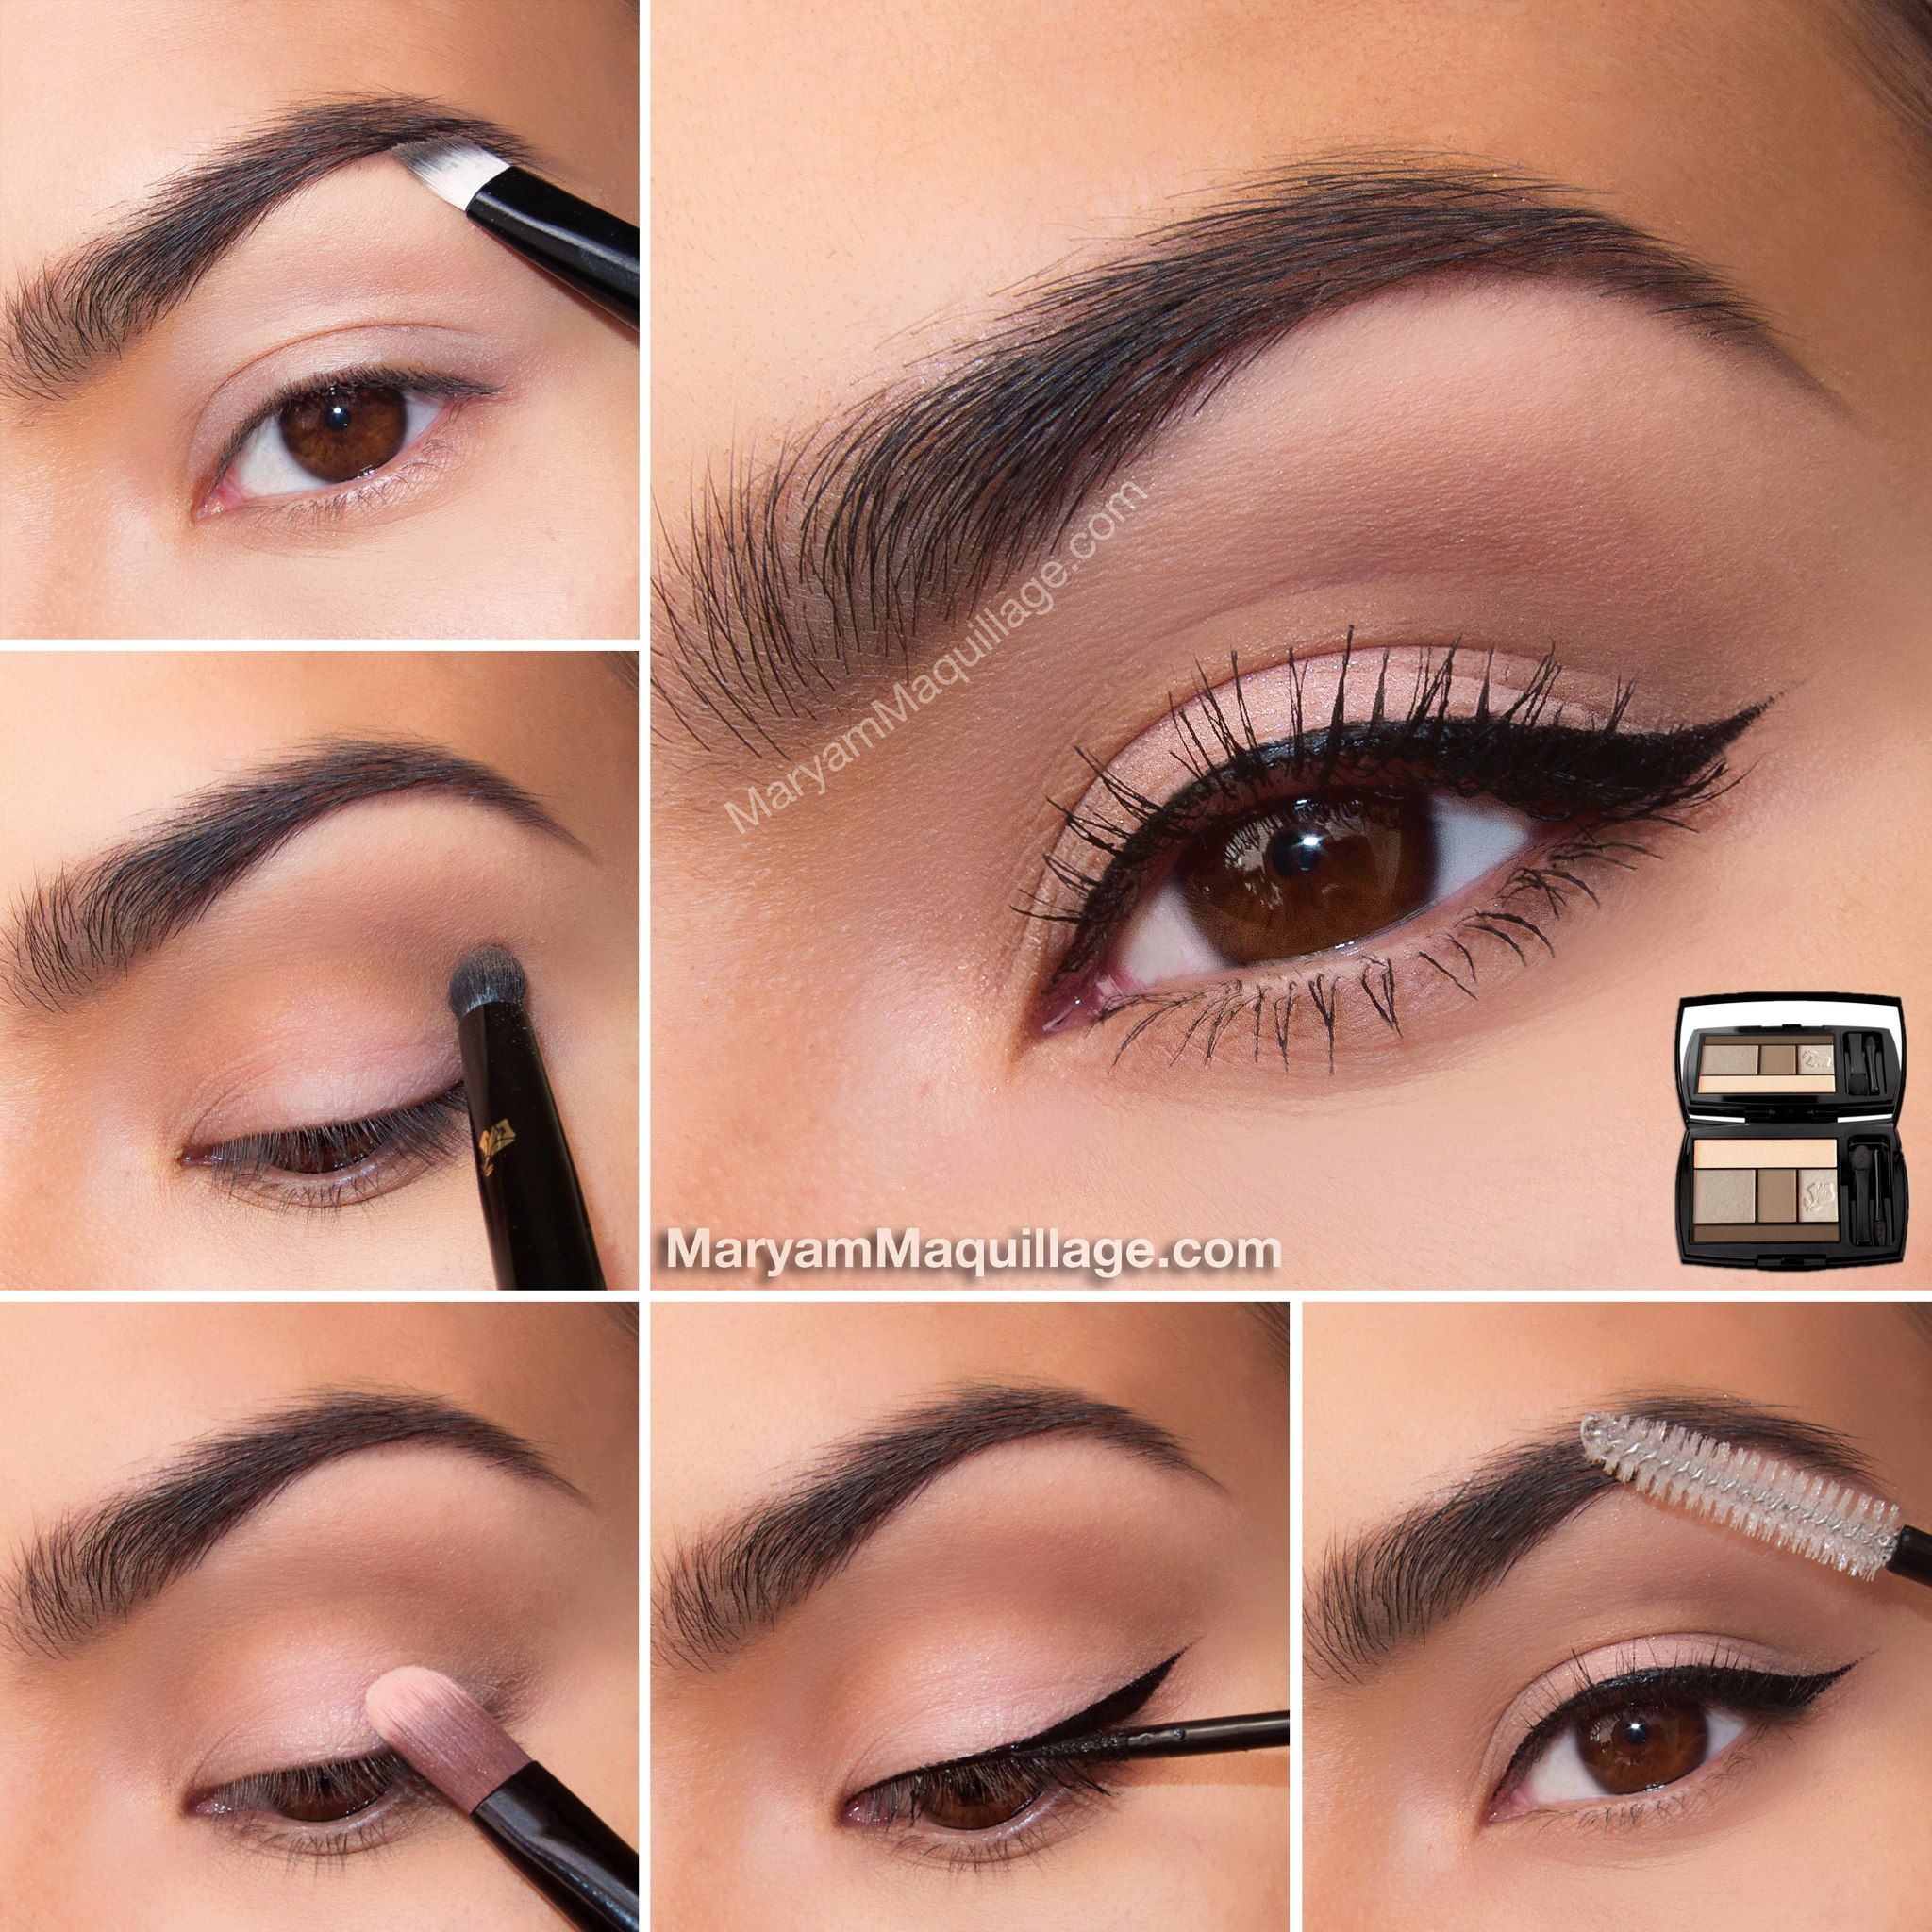 Nothing Better Than The Everyday Basics Especially When I Have 5min To Get Ready This Is My Go T Shimmer Eye Makeup Eyeshadow Tutorial Natural Smoky Eye Makeup